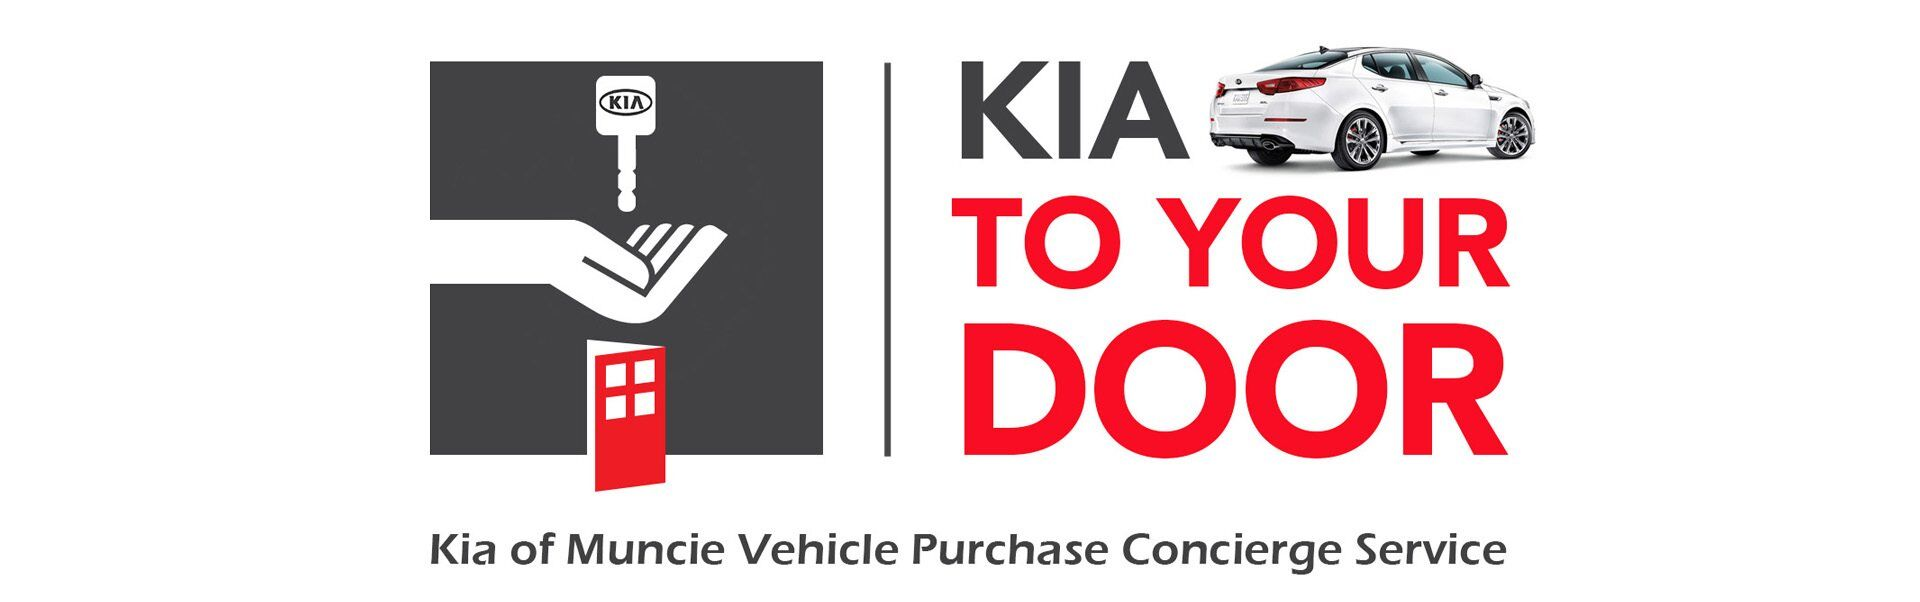 Kia To Your Door